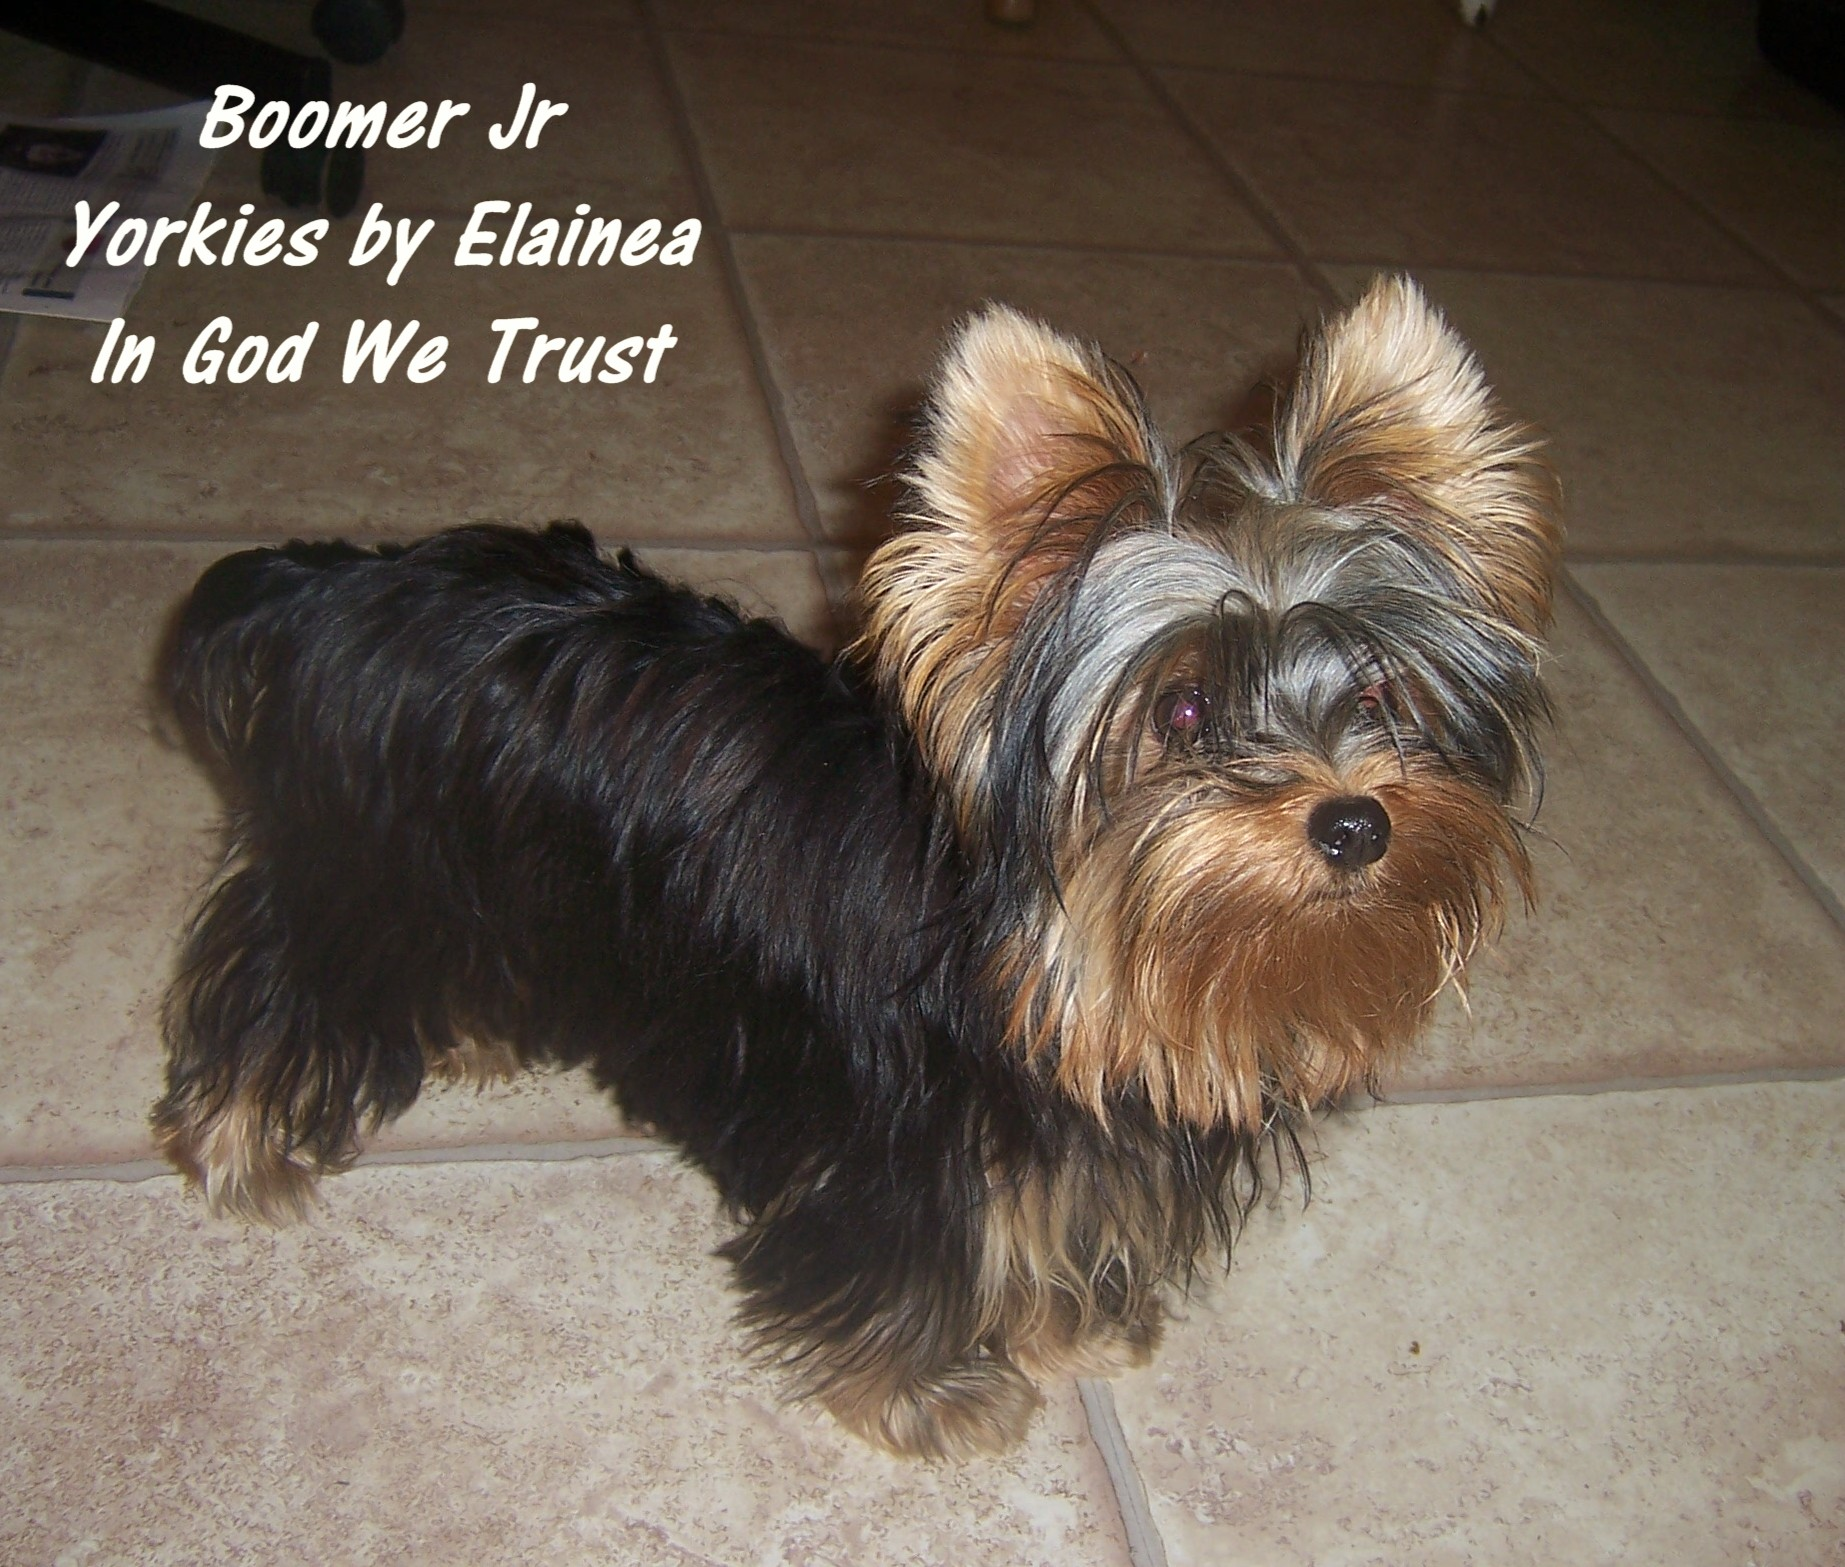 Boomer Jr placed in a home